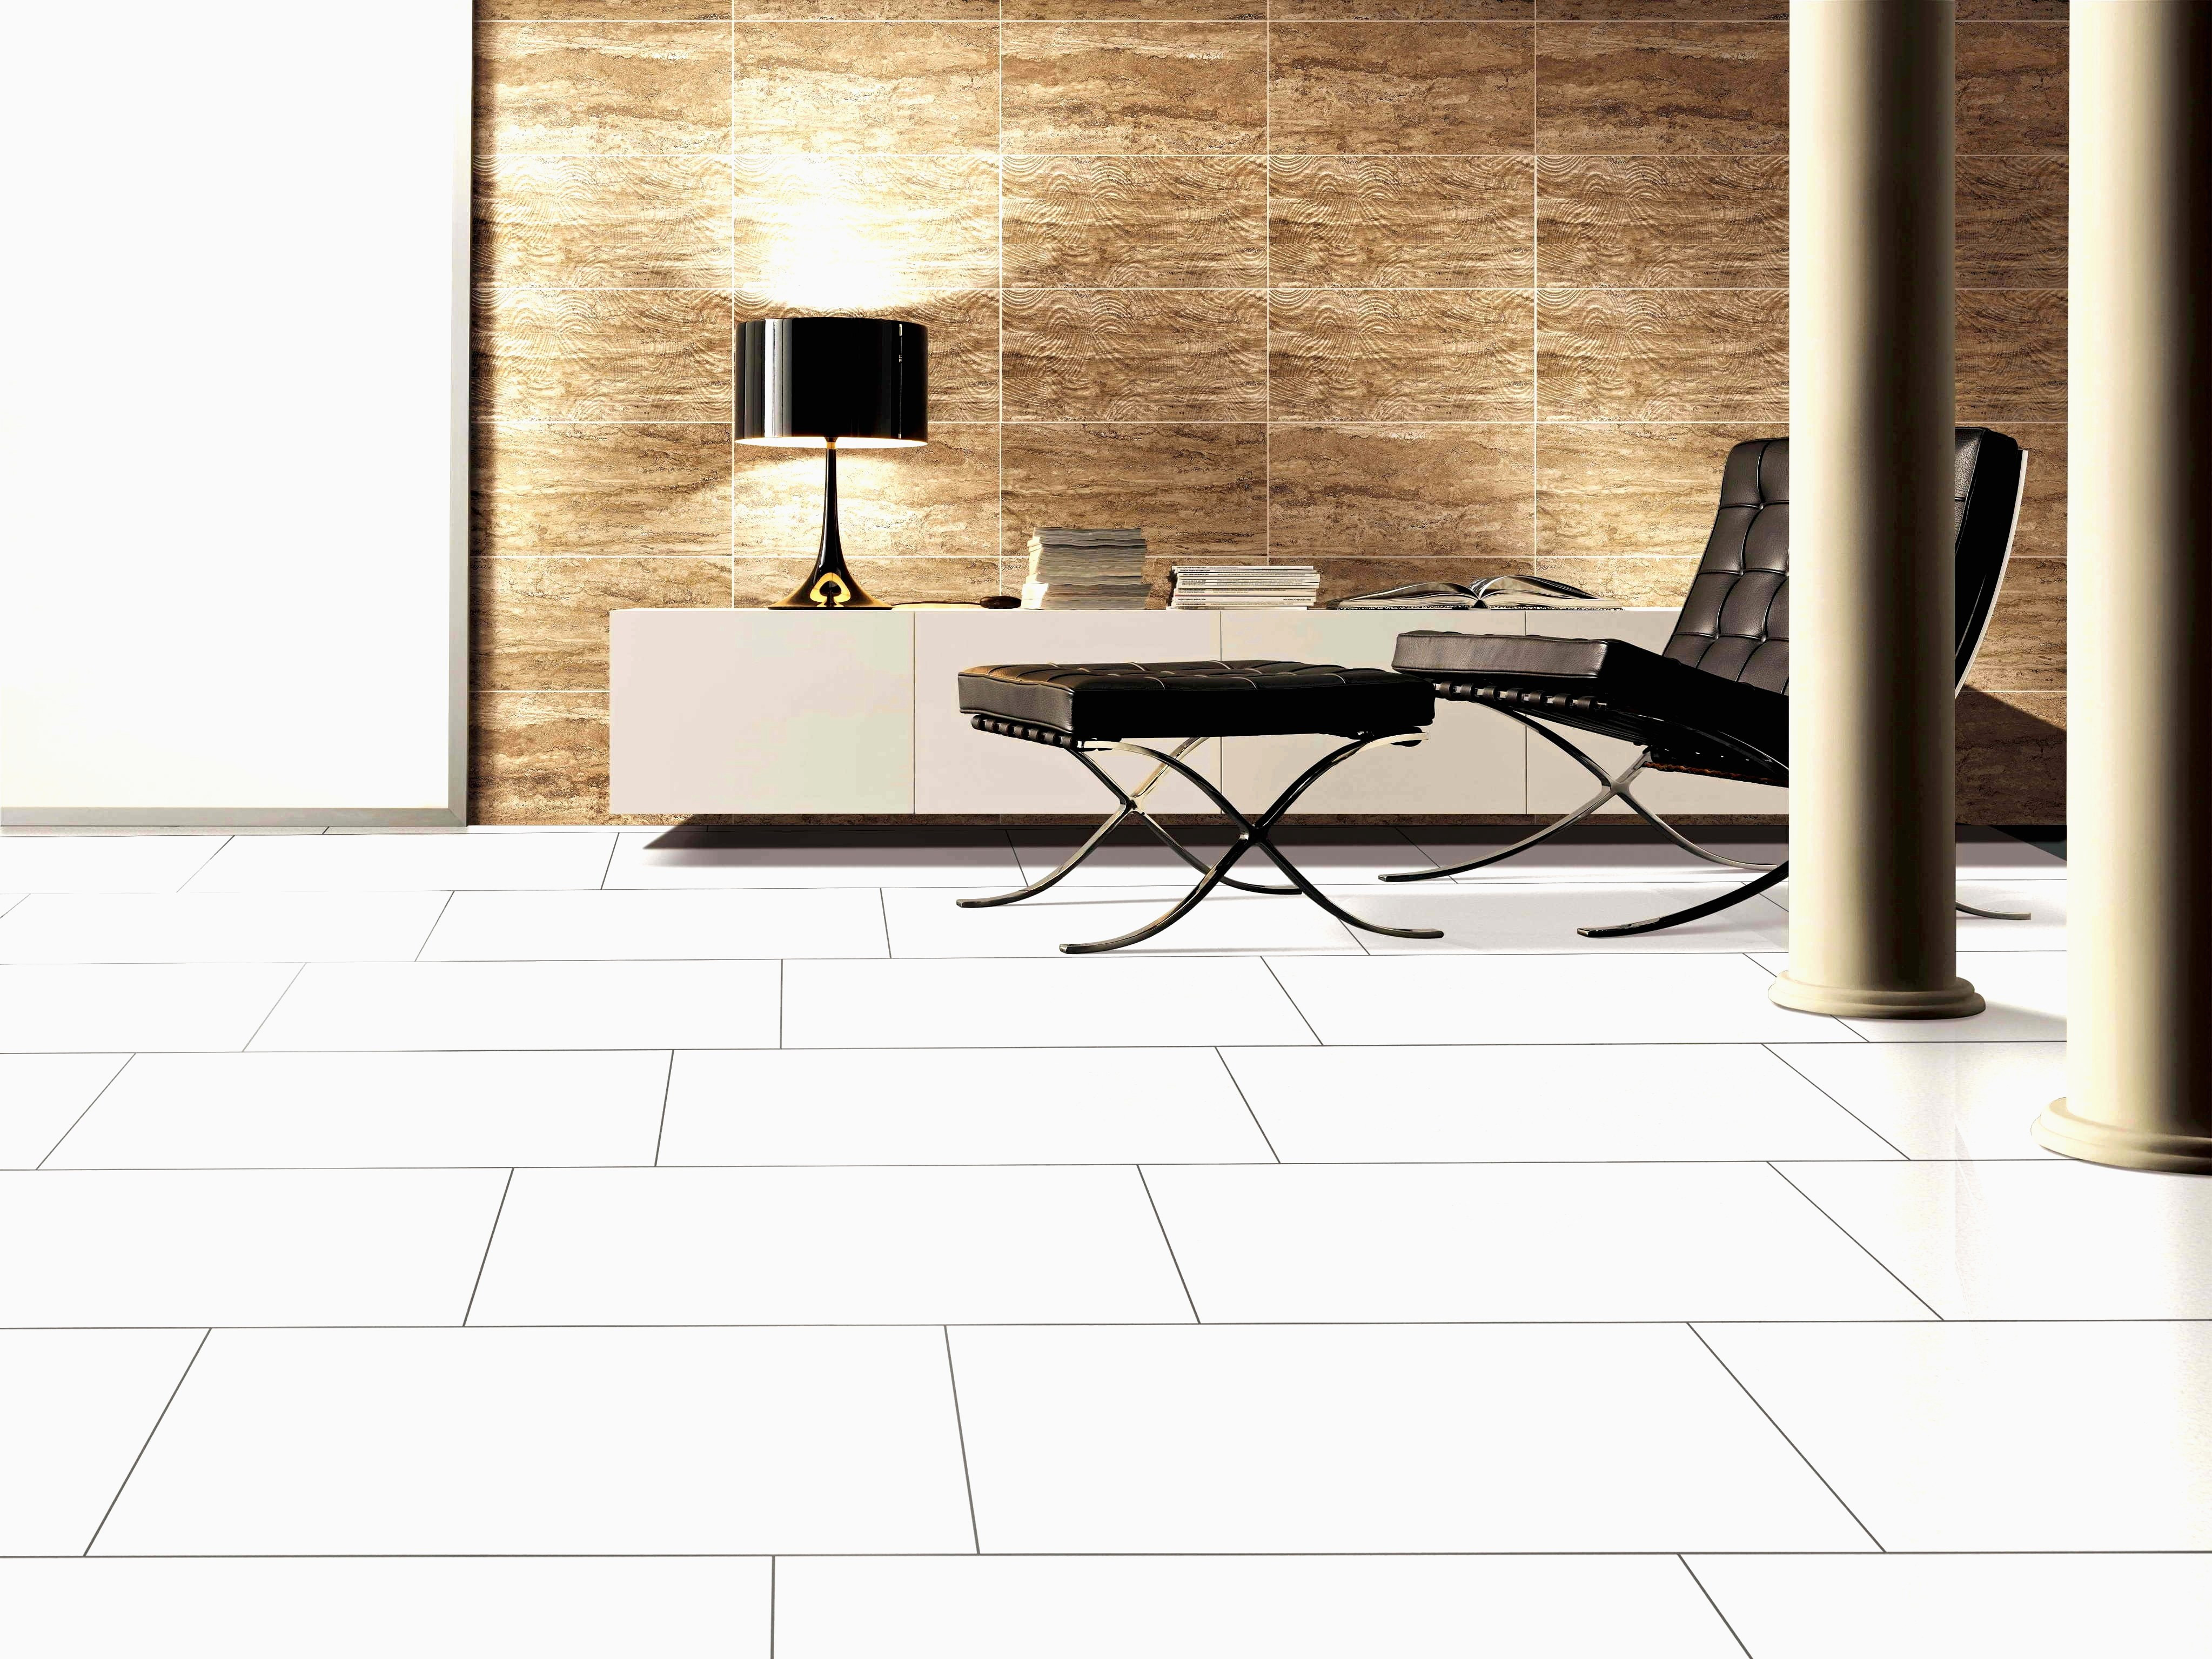 hardwood floor on carpet of 29 classic transition between tile and carpet peritile within luxury new new tile floor heating lovely bmw e87 1er 04 07 120d 2 0d 120kw